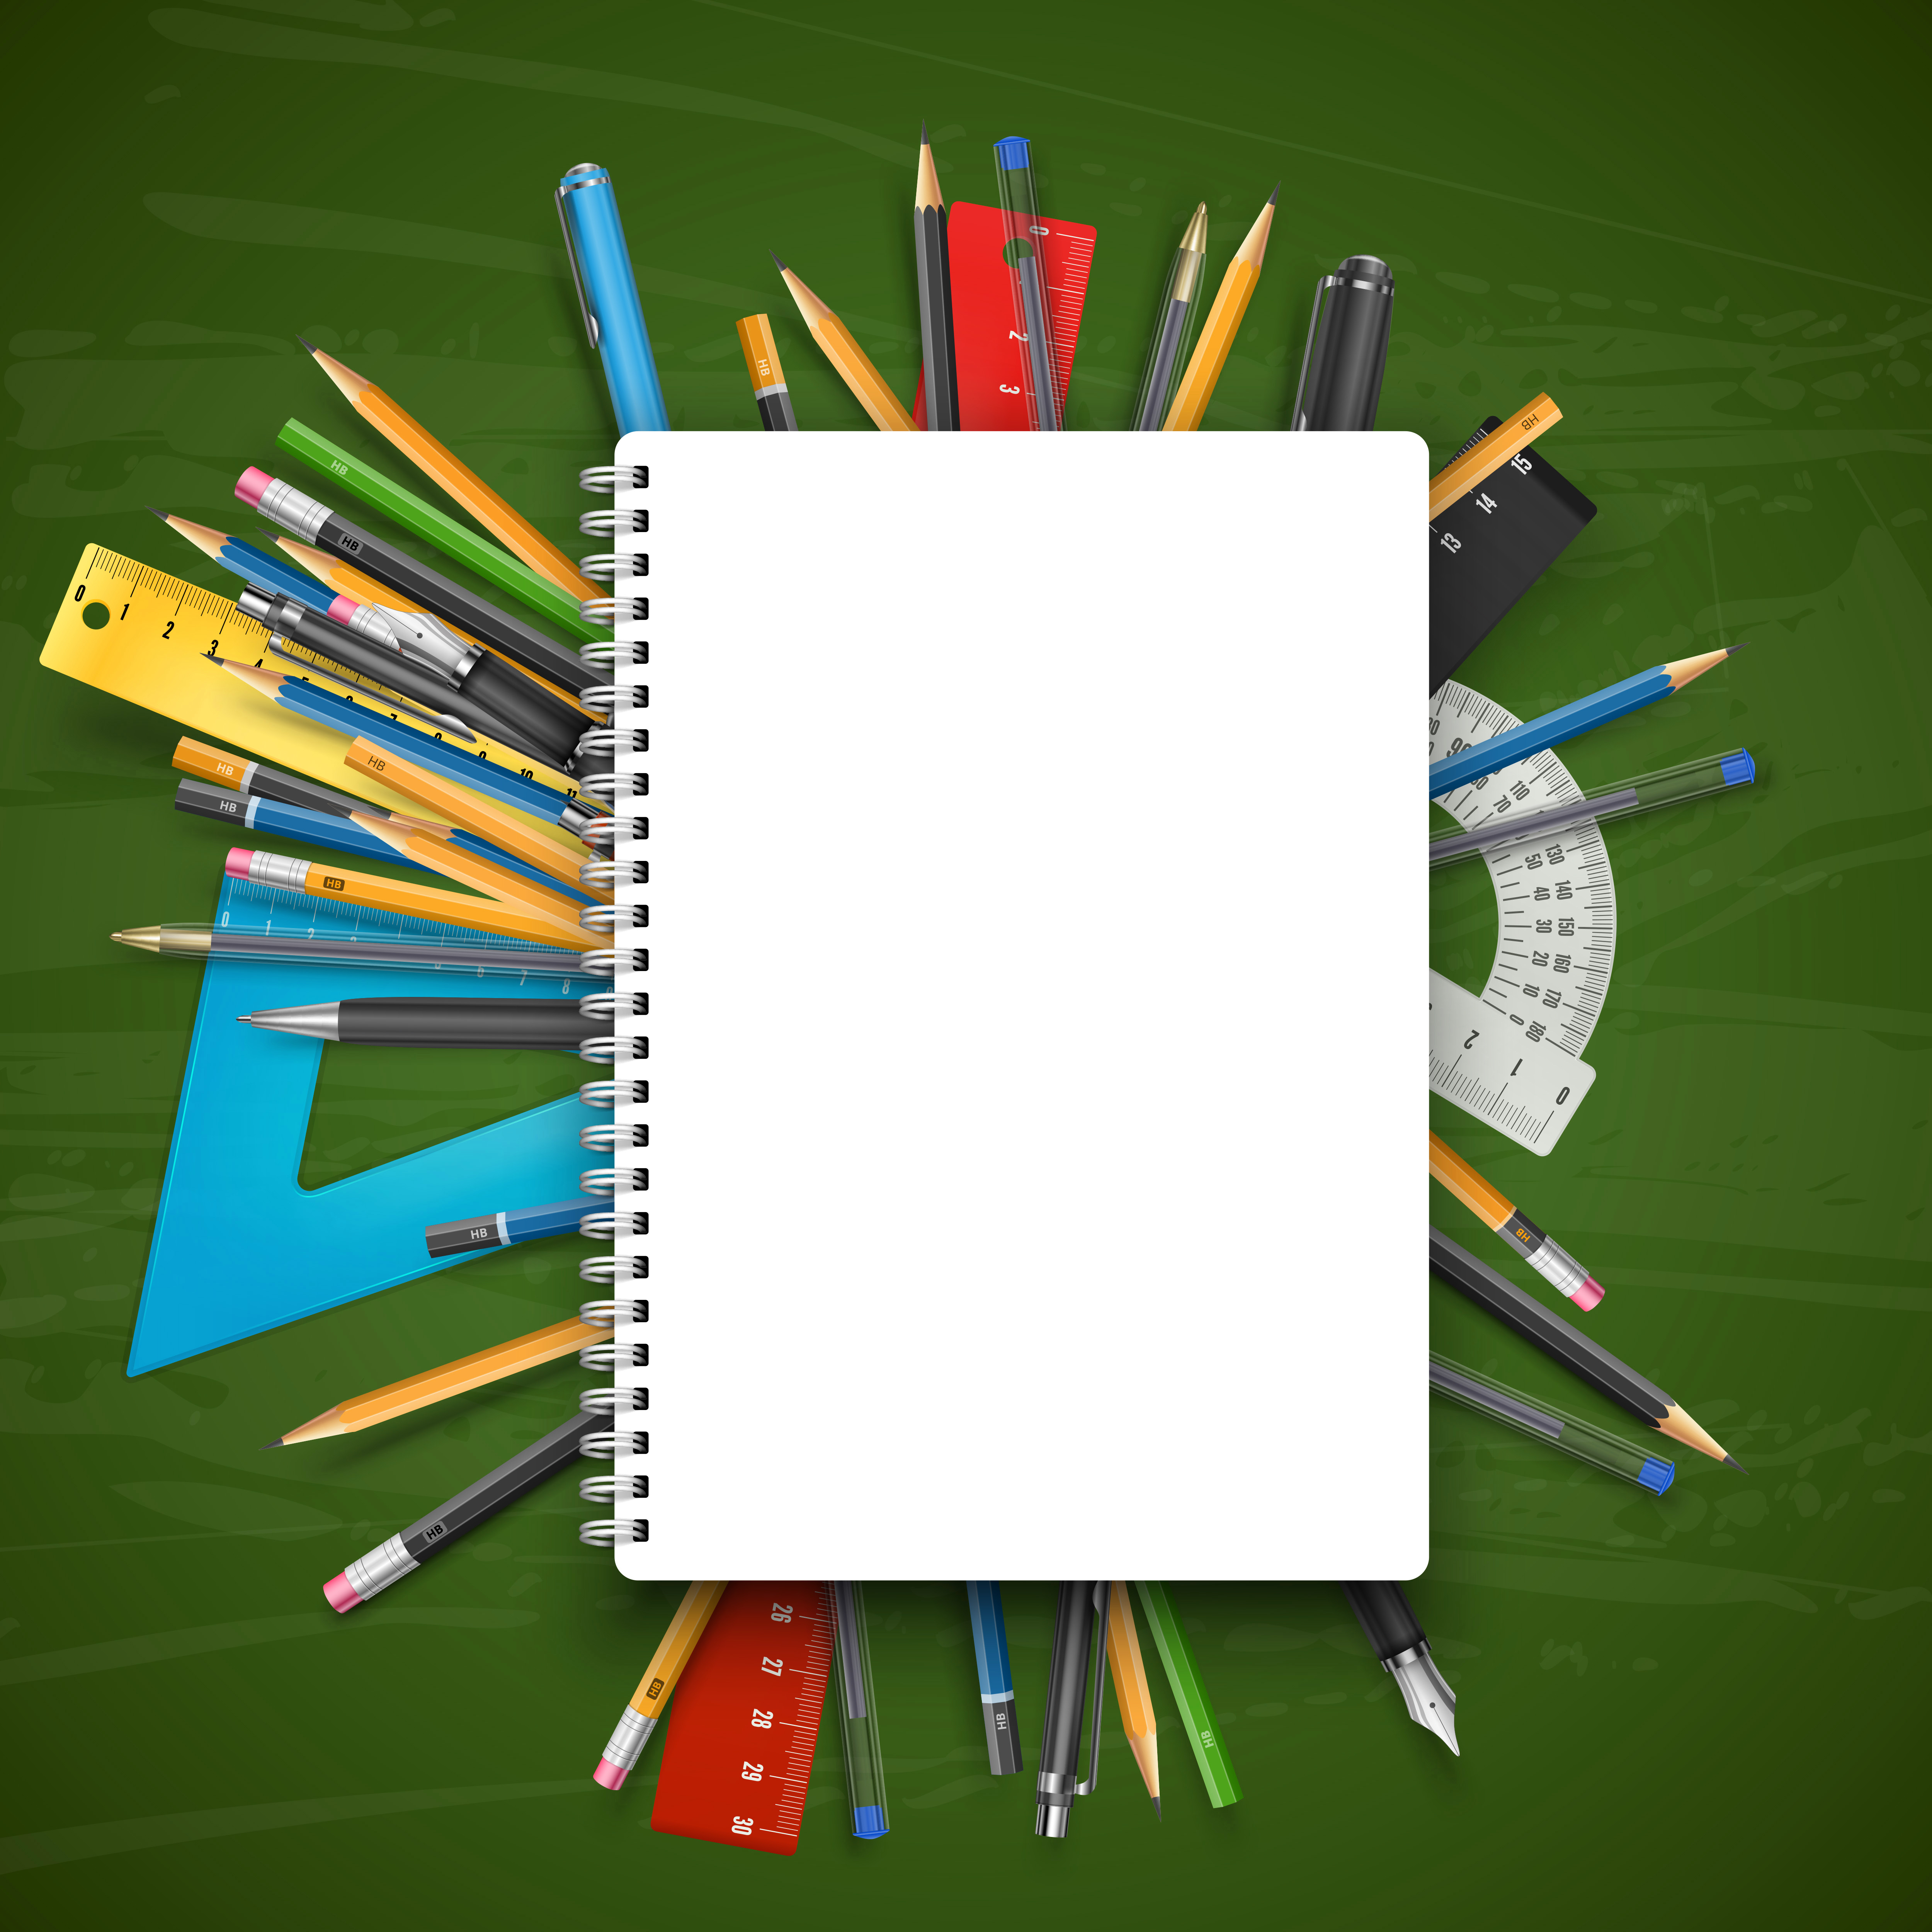 Notebook clipart background Notebook full  View Background